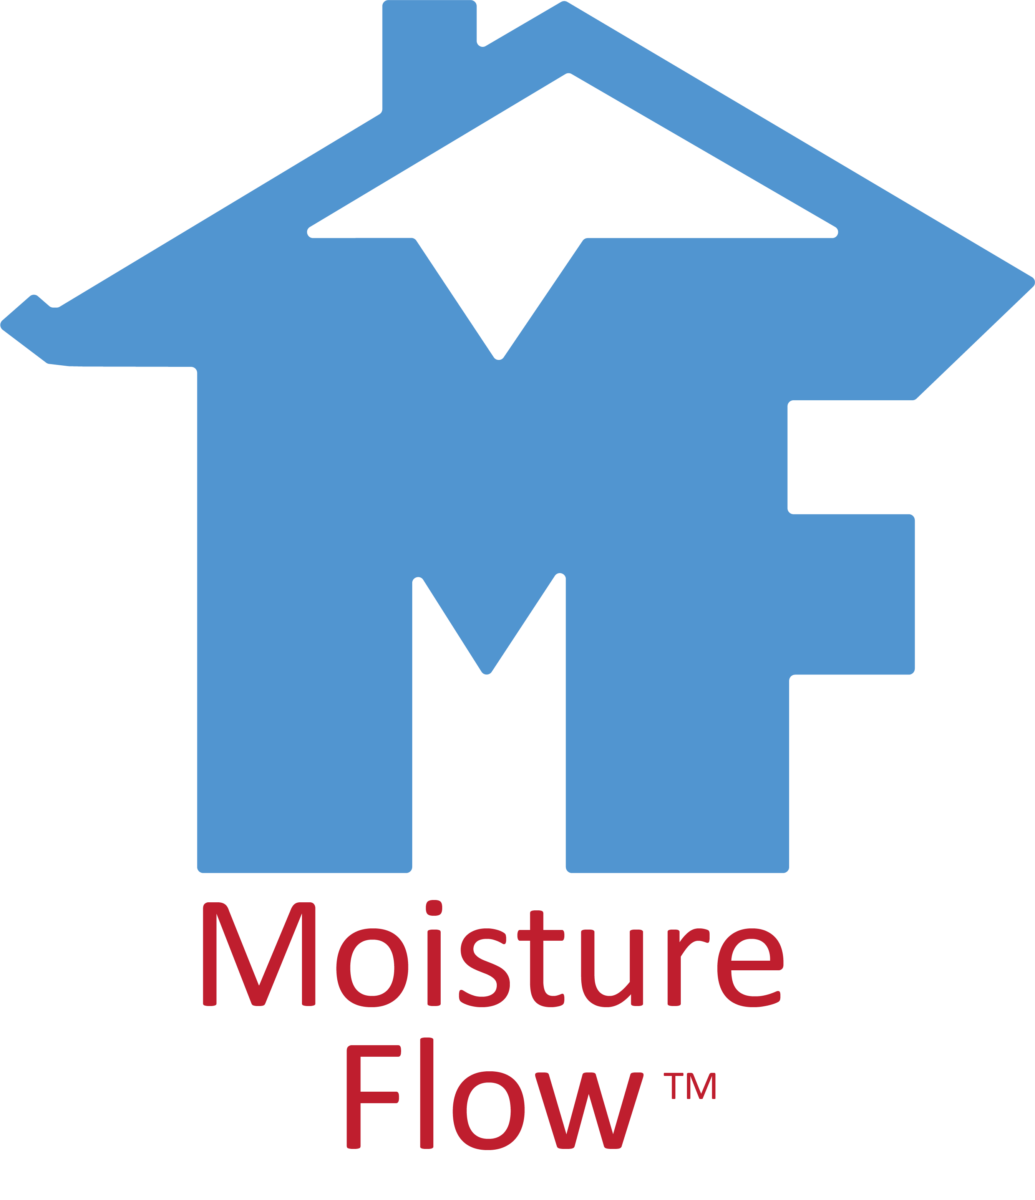 Introducing The Soffit Vent System by Moisture Flow® For Homeowners Who Want A New Alternative To Mold Remediation And Removal